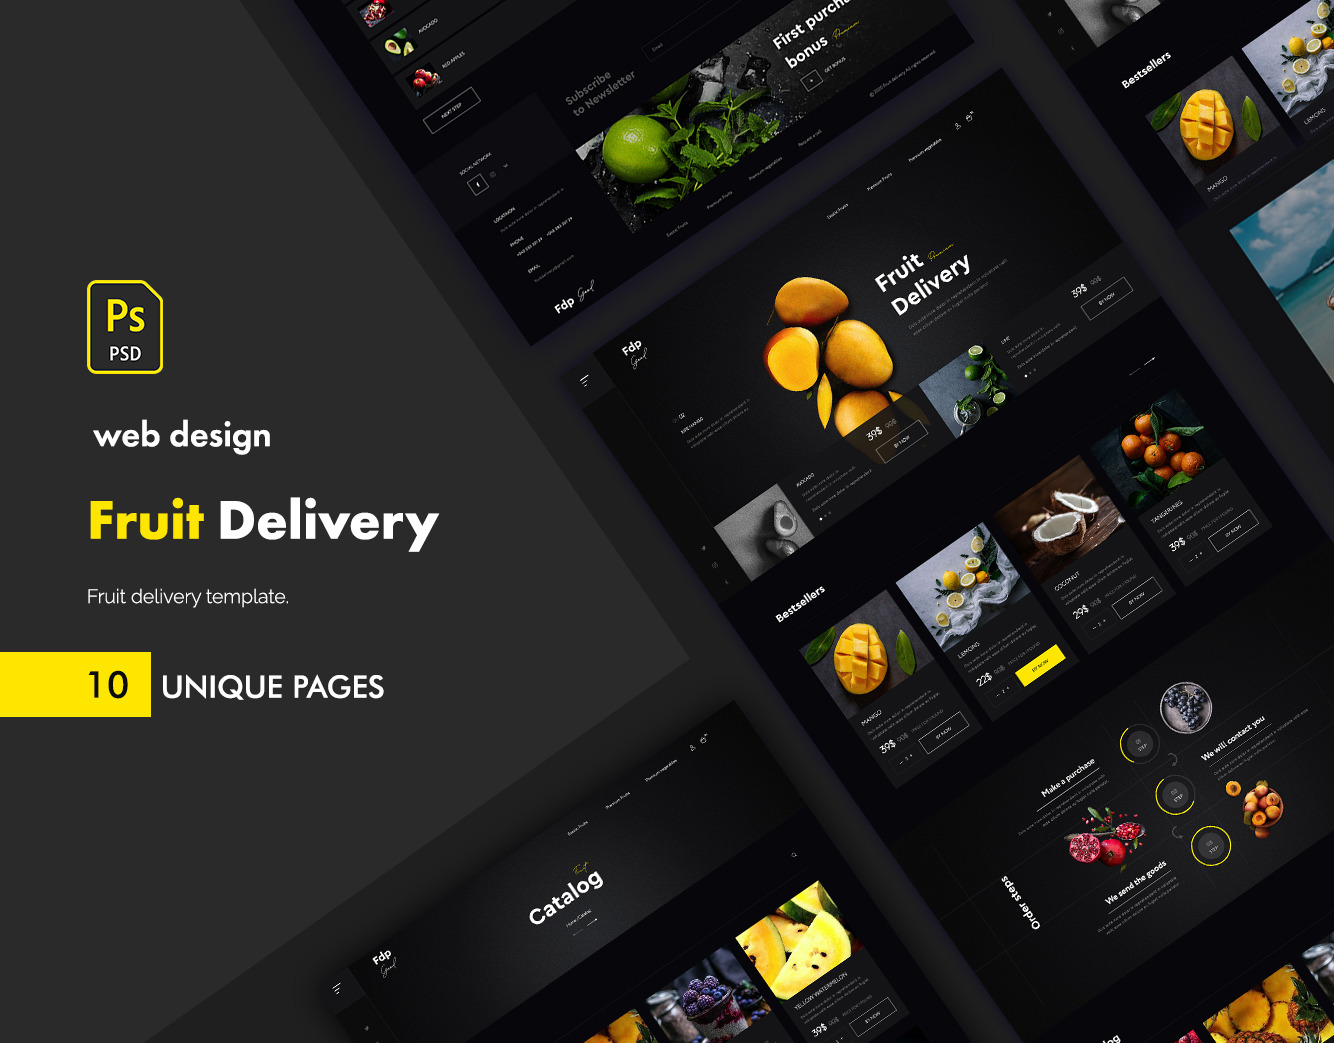 Fruit delivery2 UI kit